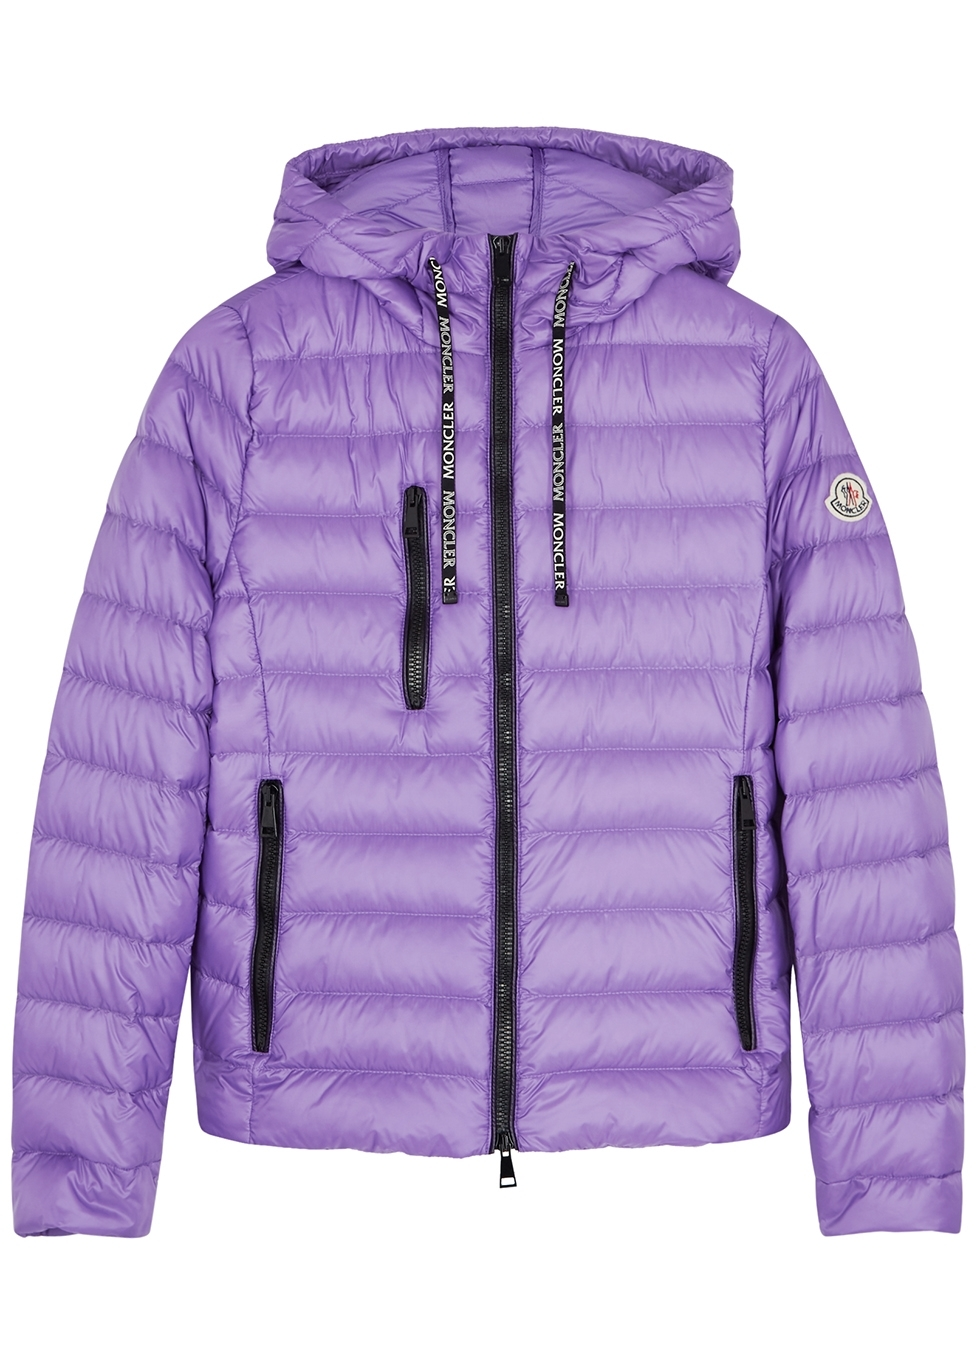 2c1985b24432 Moncler - Womens - Harvey Nichols